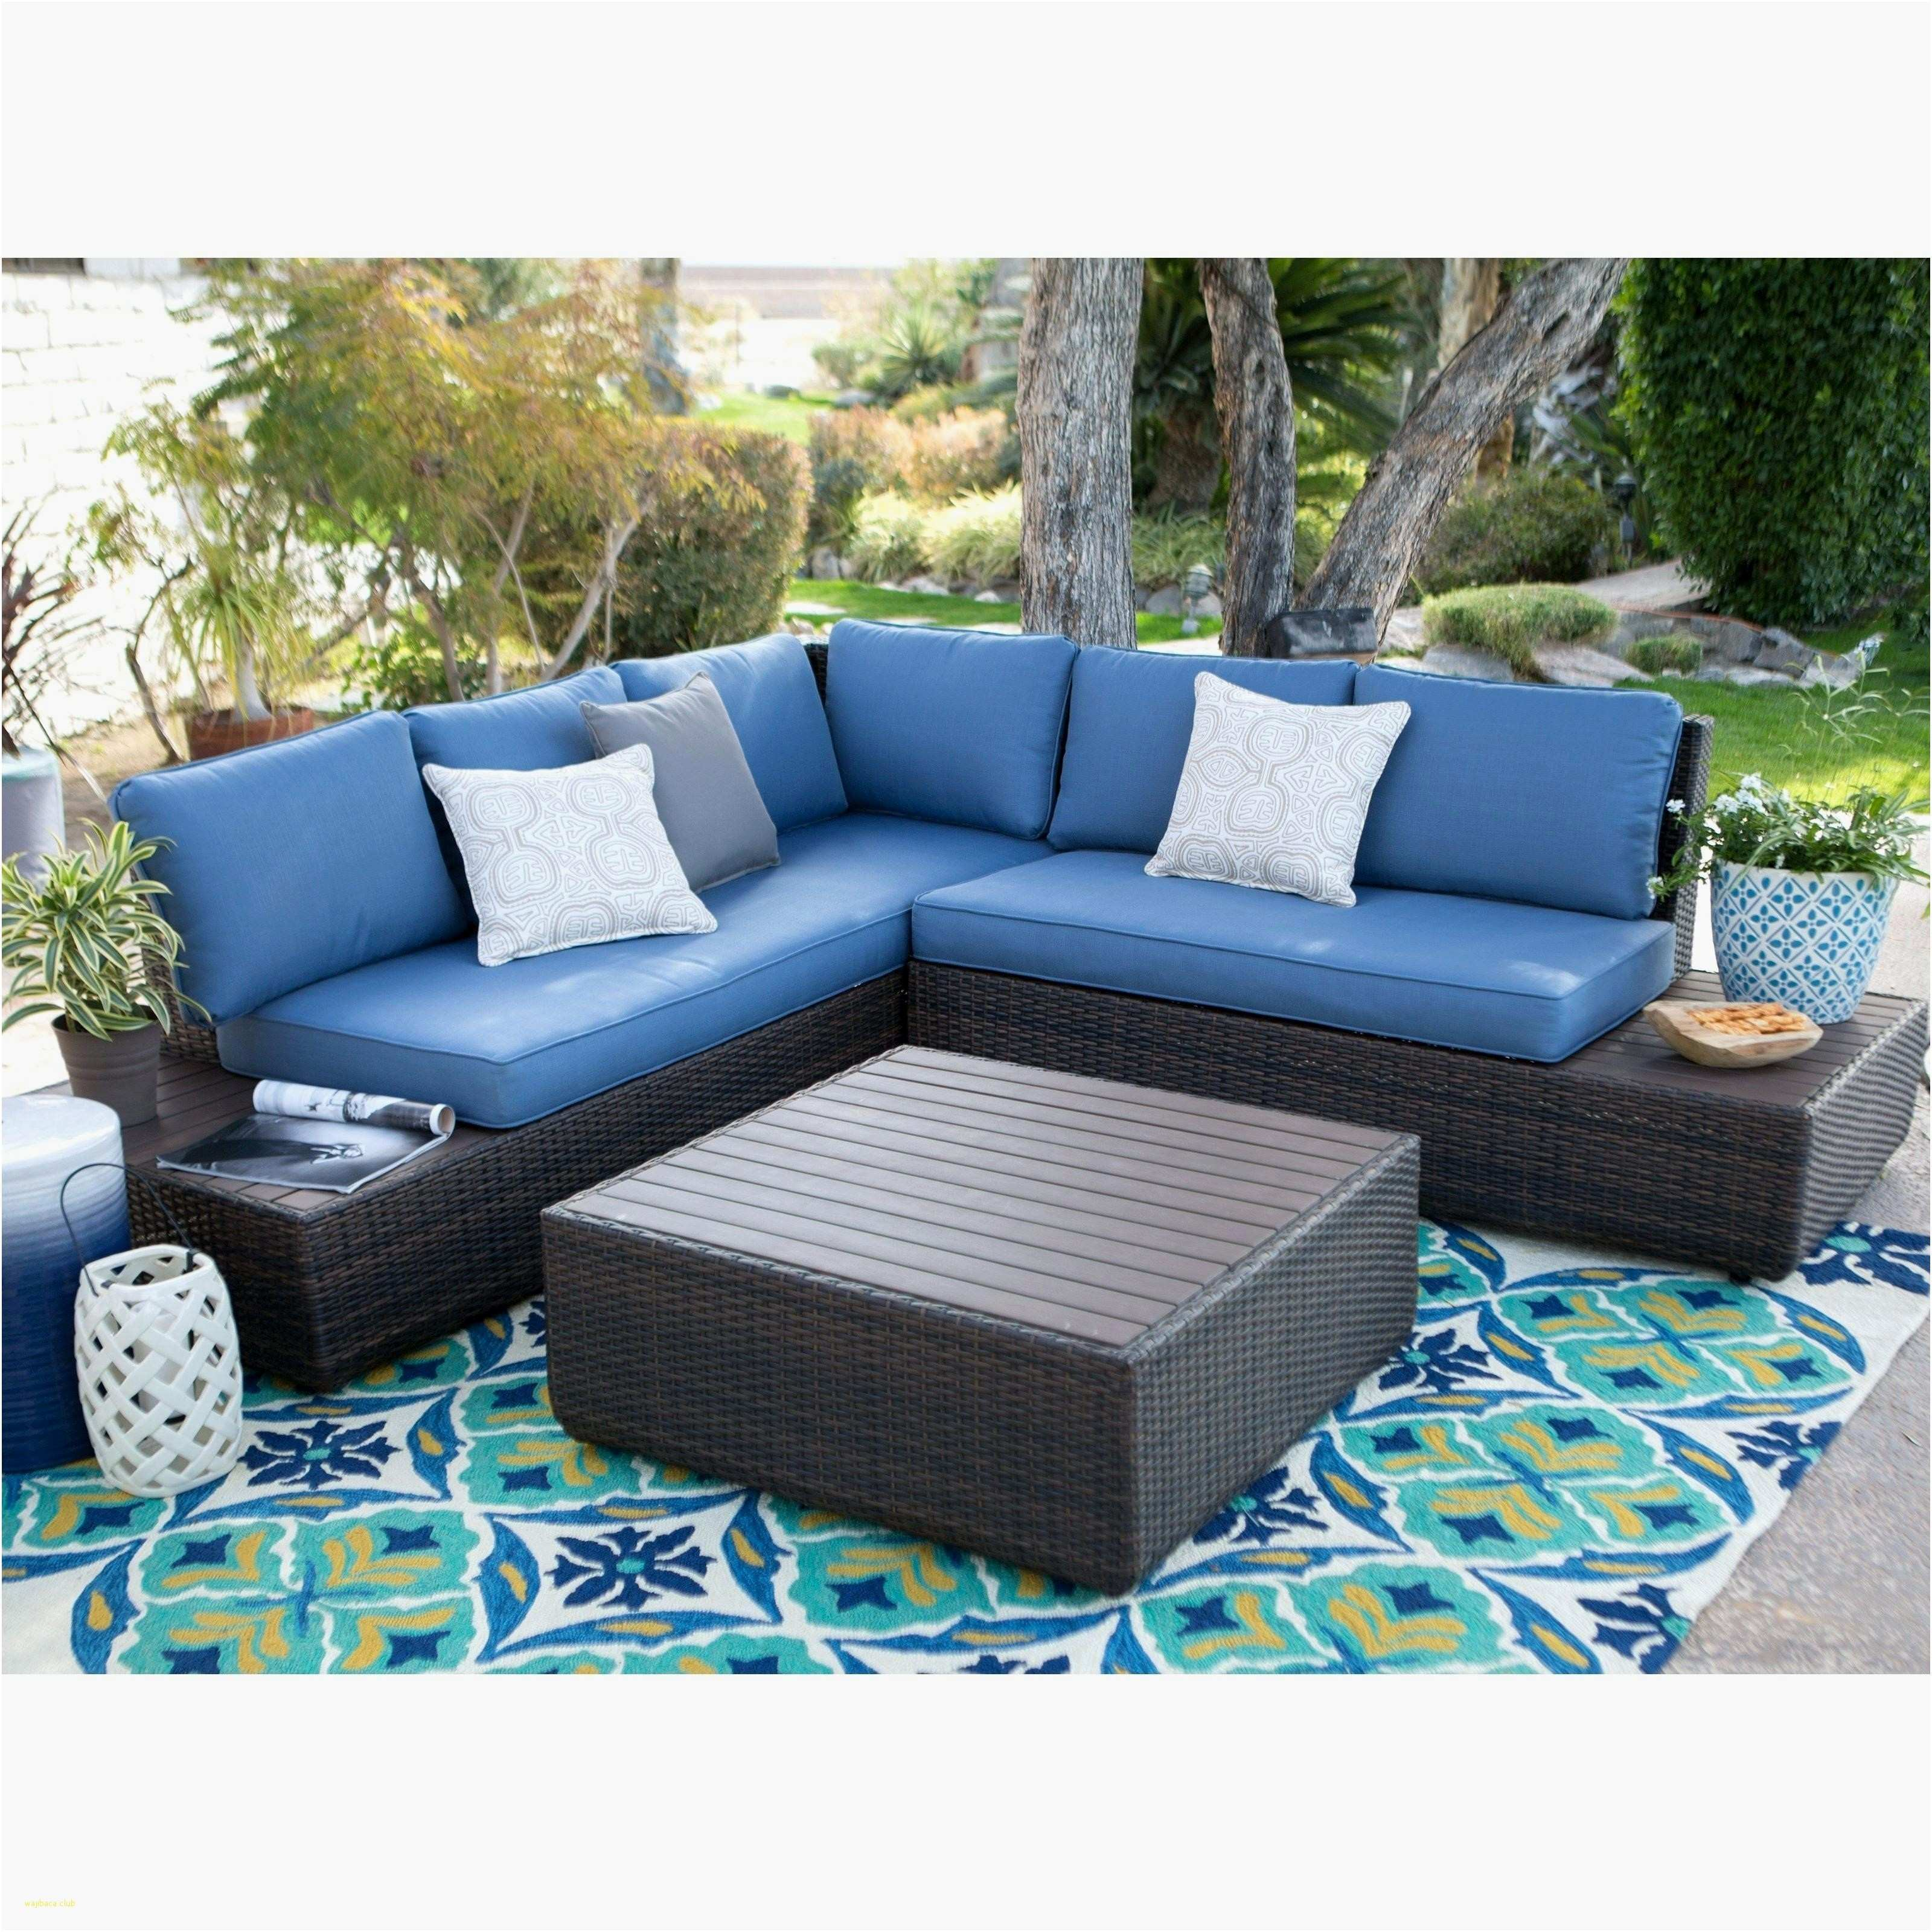 Home Design Cheap Couch Set Best Tommy Bahama Outdoor Furniture